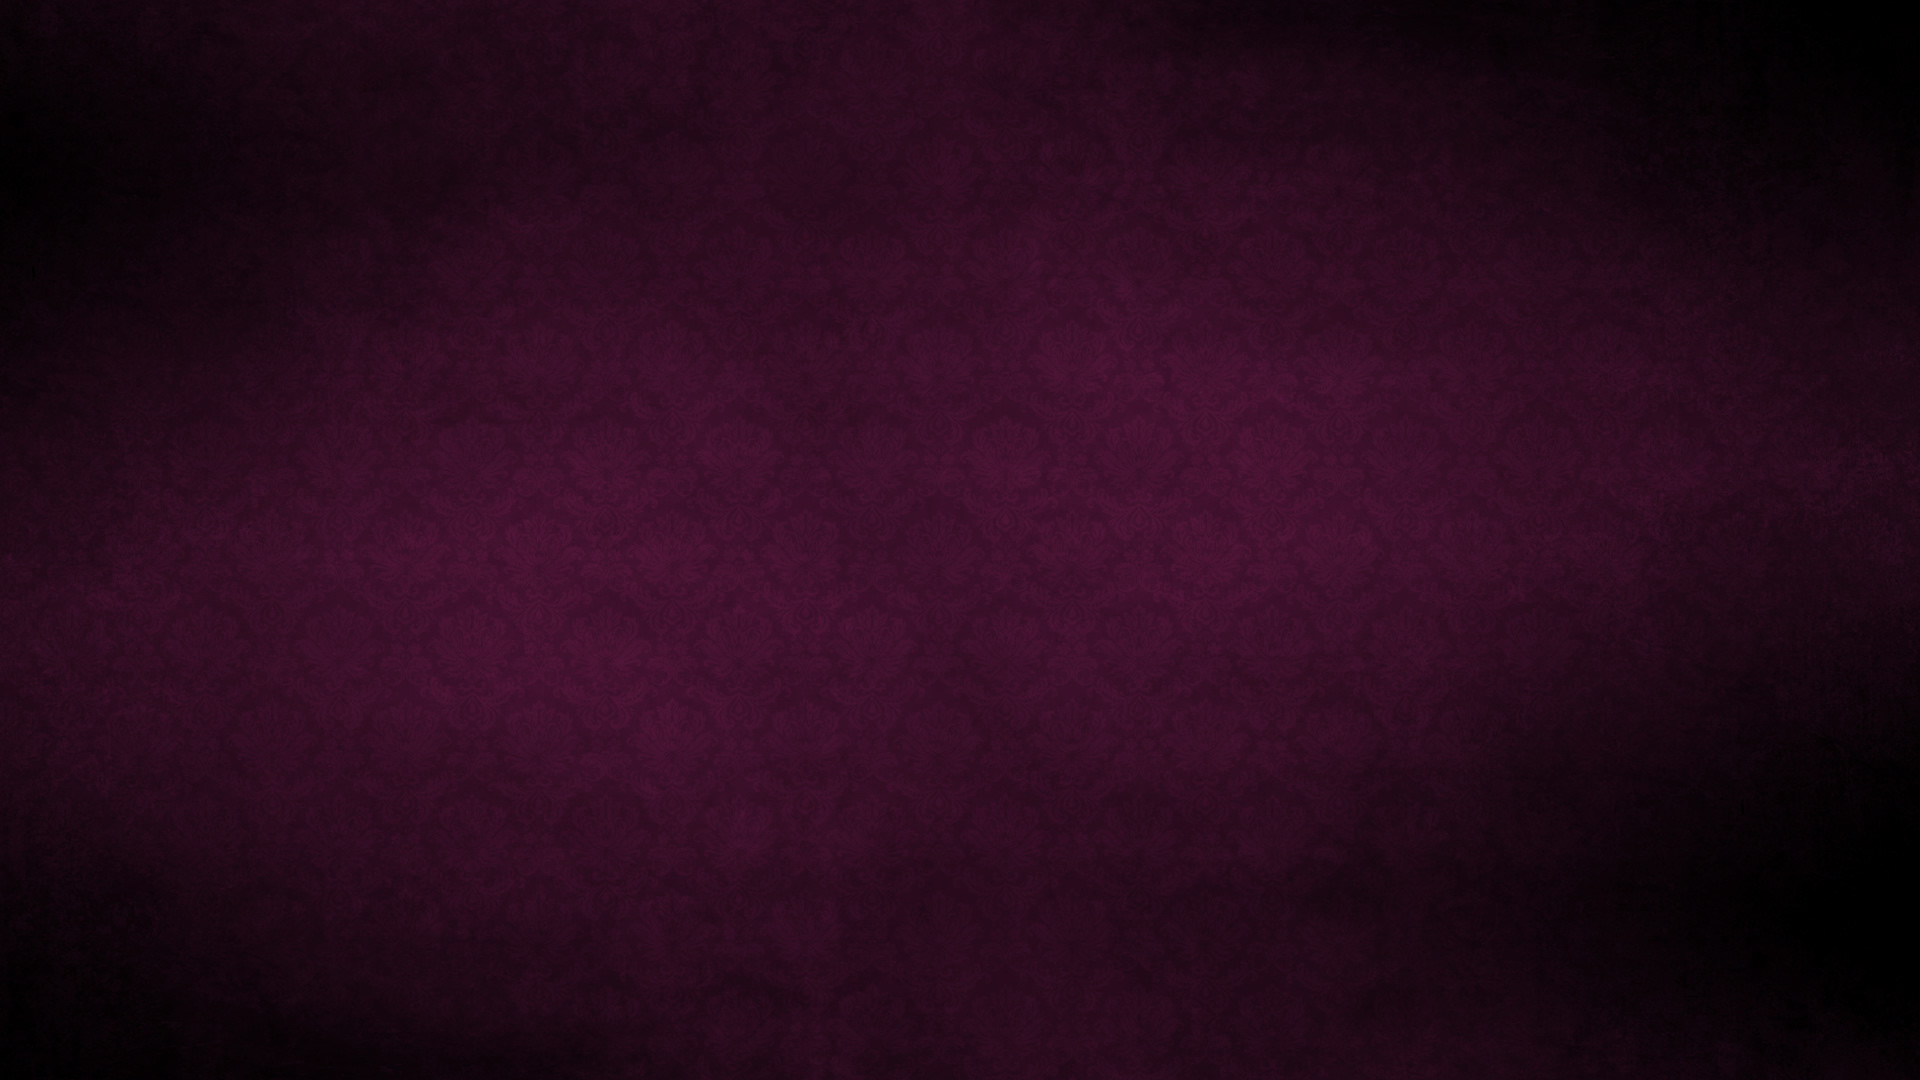 1920x1080 Plain Black Wallpaper 28 Desktop Background